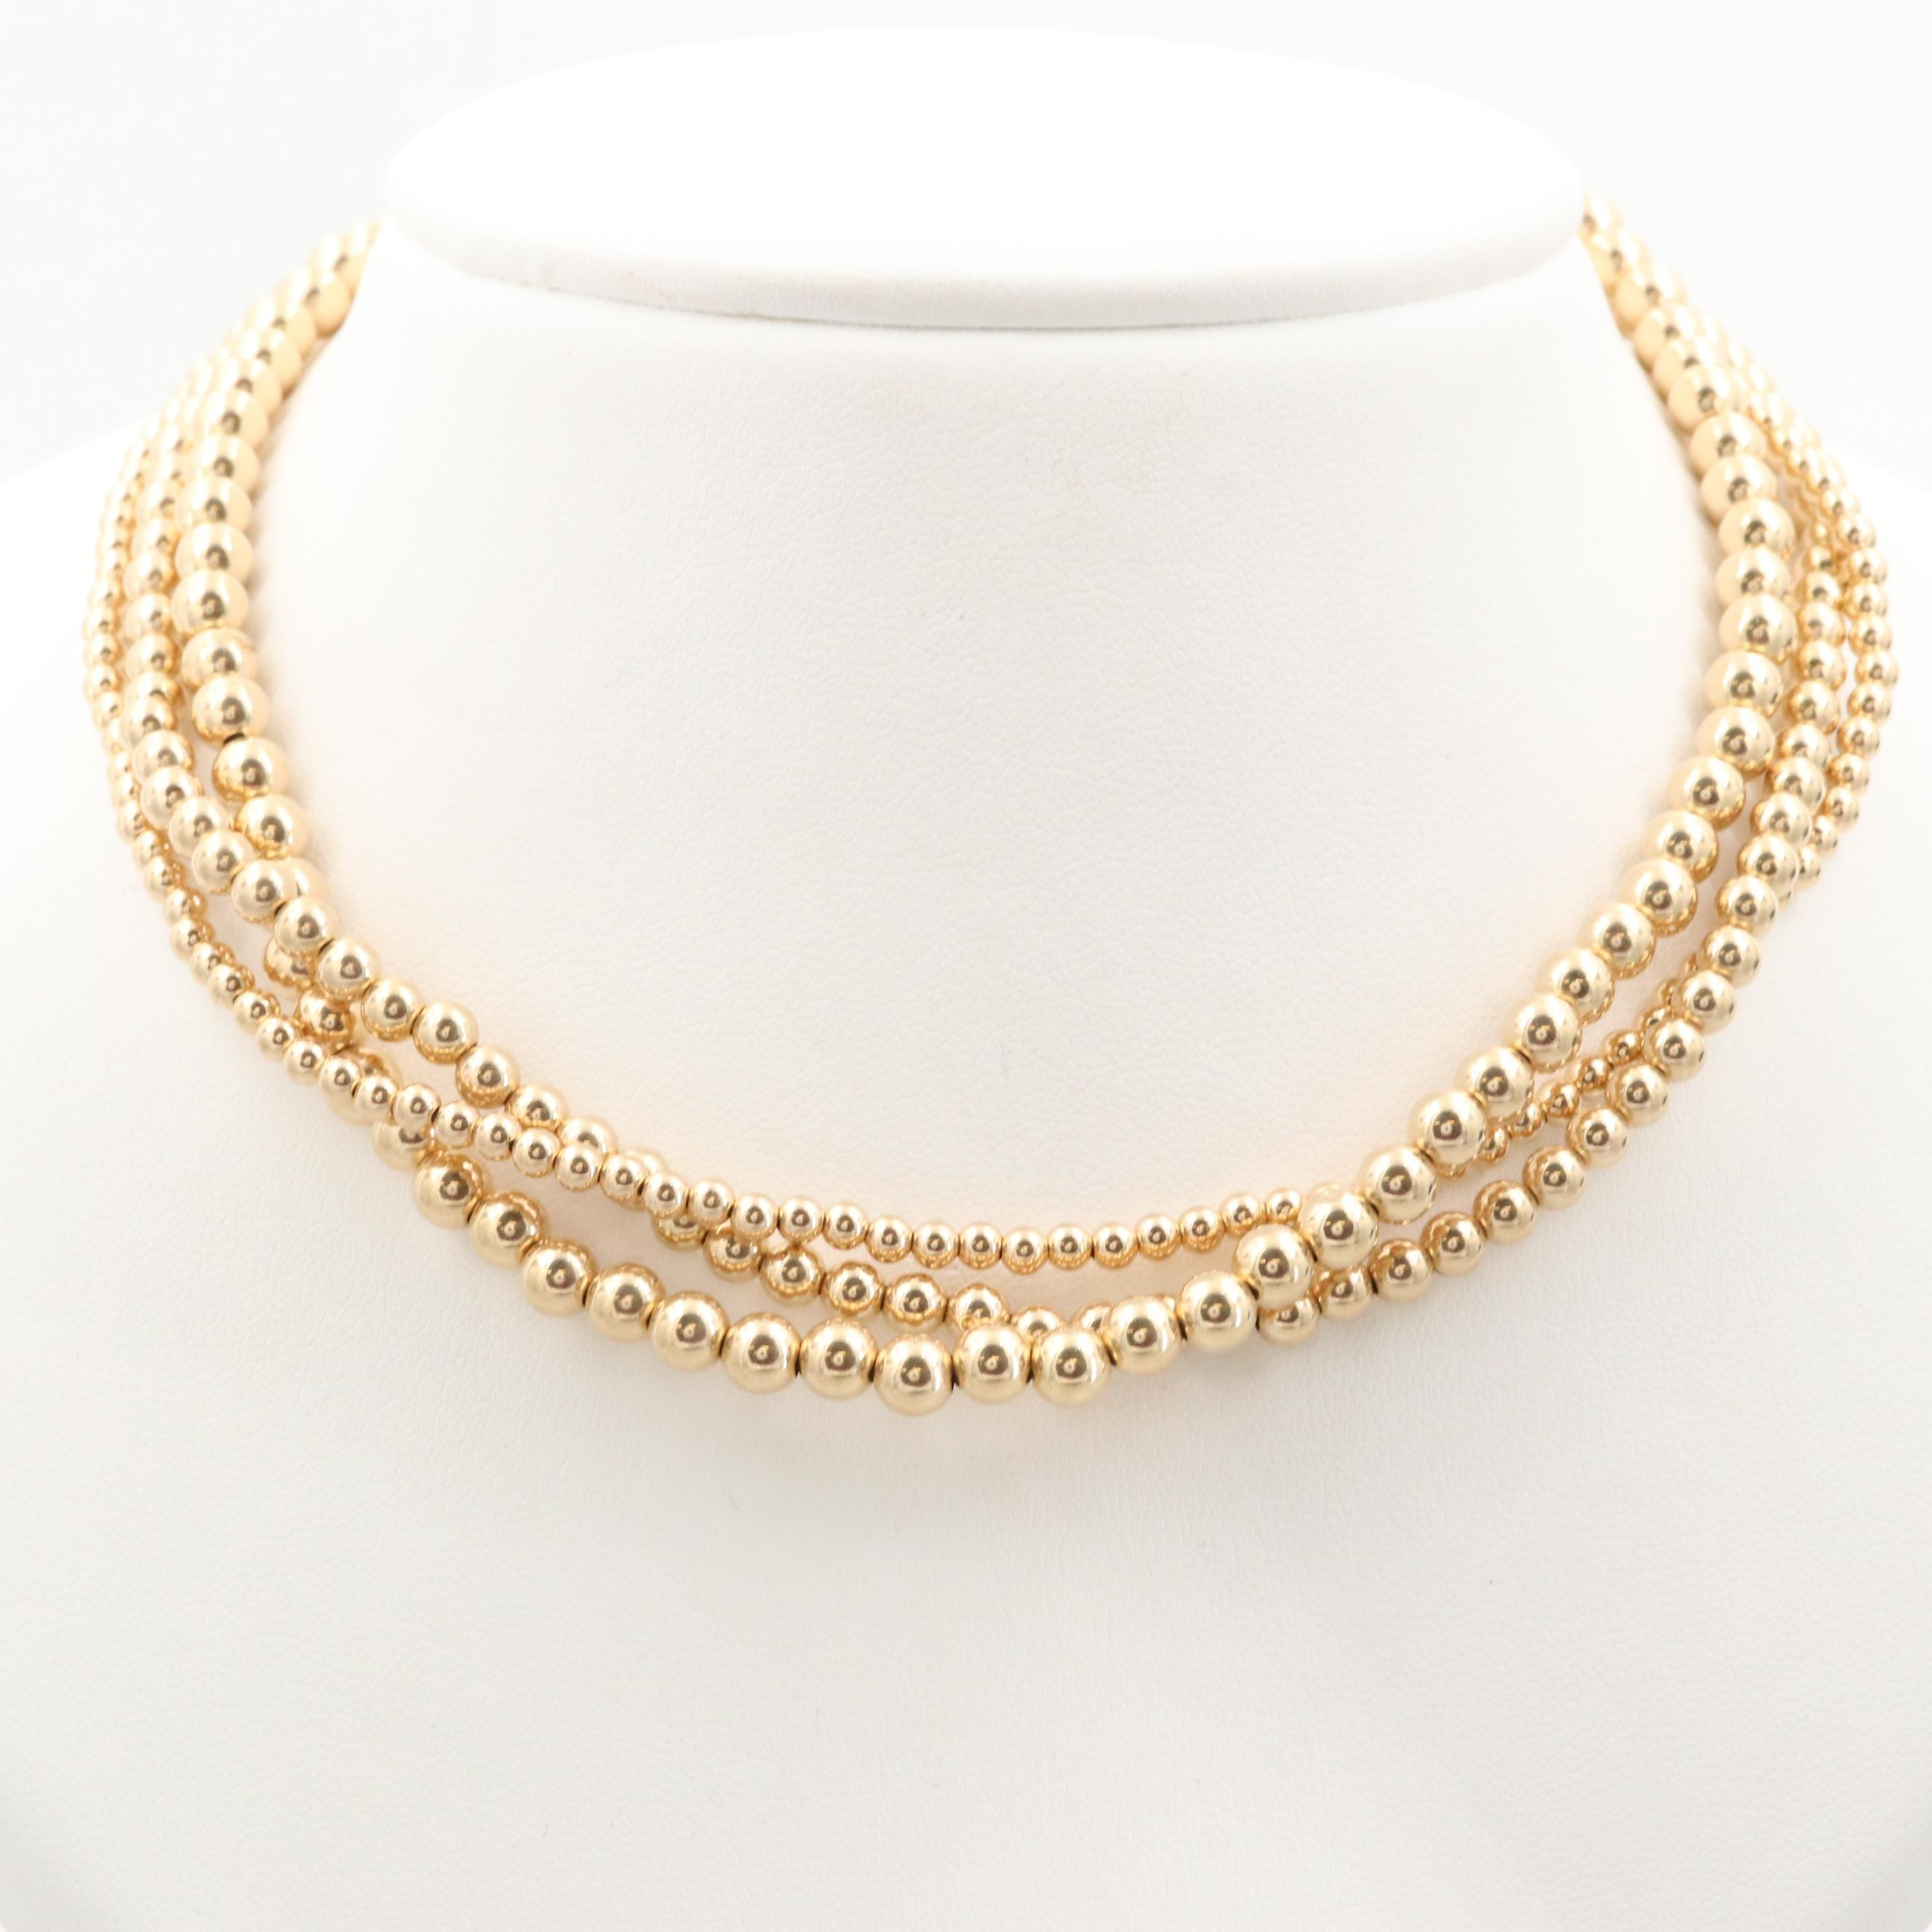 14K Yellow Gold Triple Strand Necklace